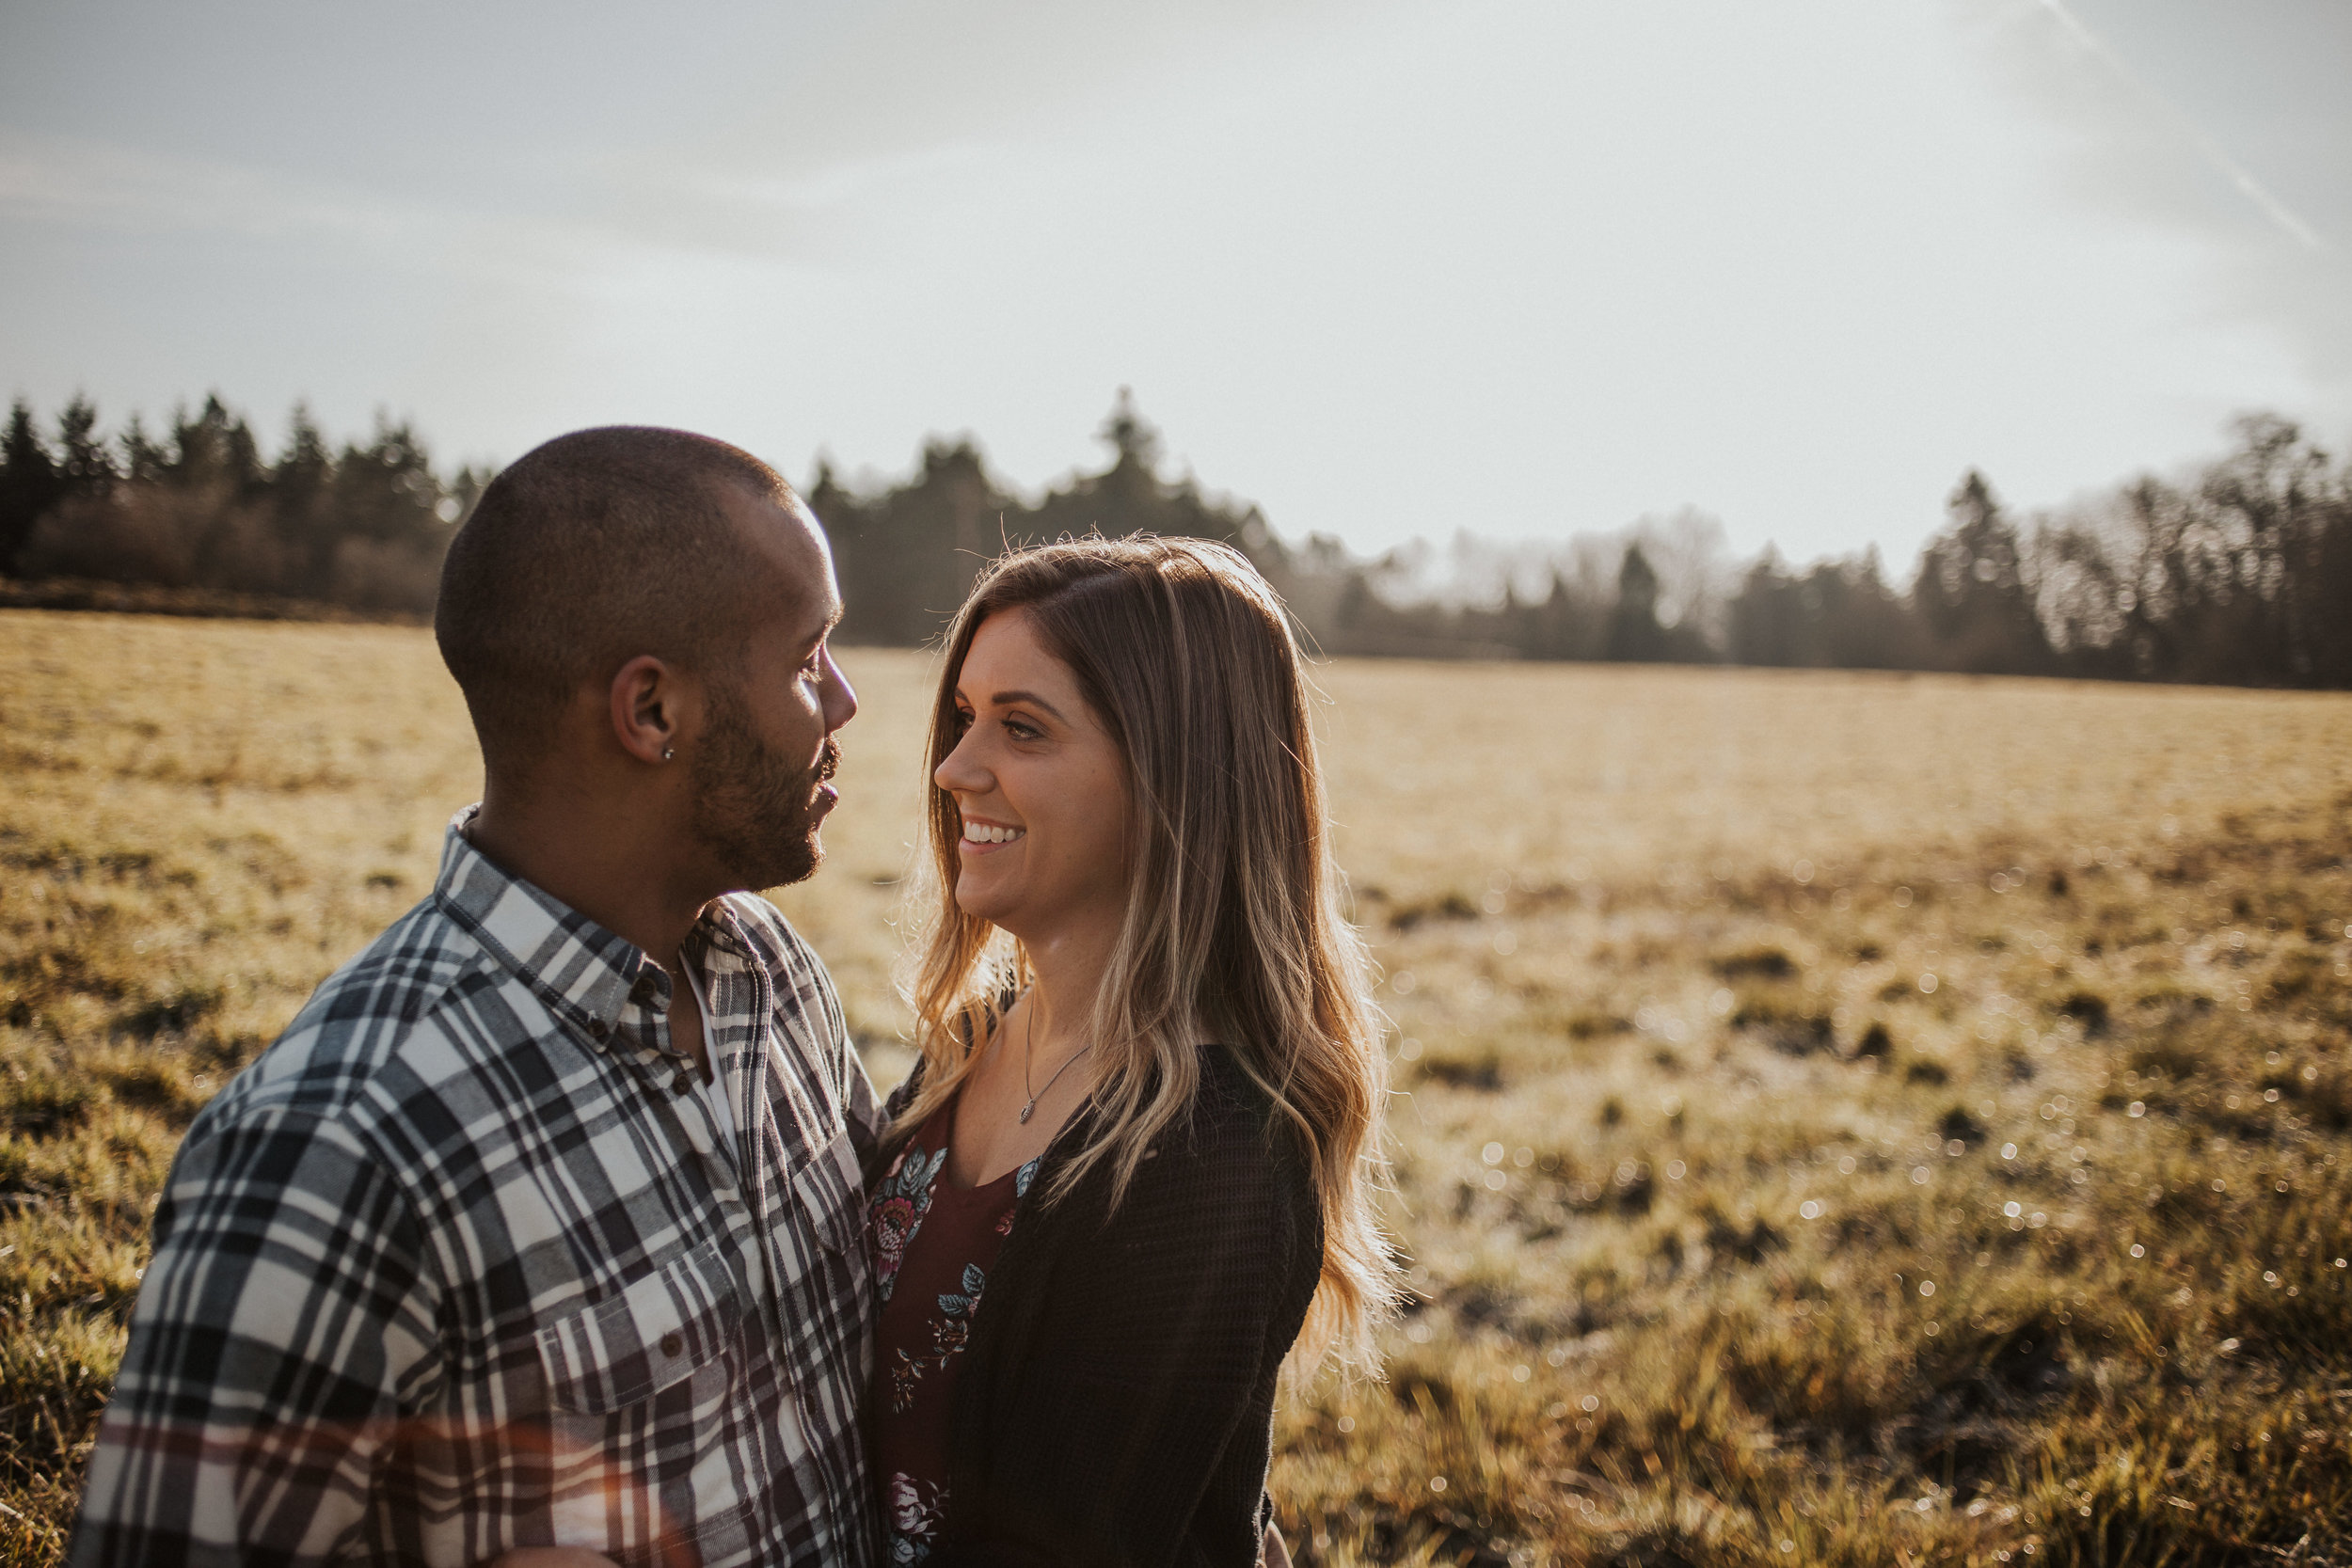 couple-engagement-photos-ridgefield-washington-august-muse-images-12.jpg